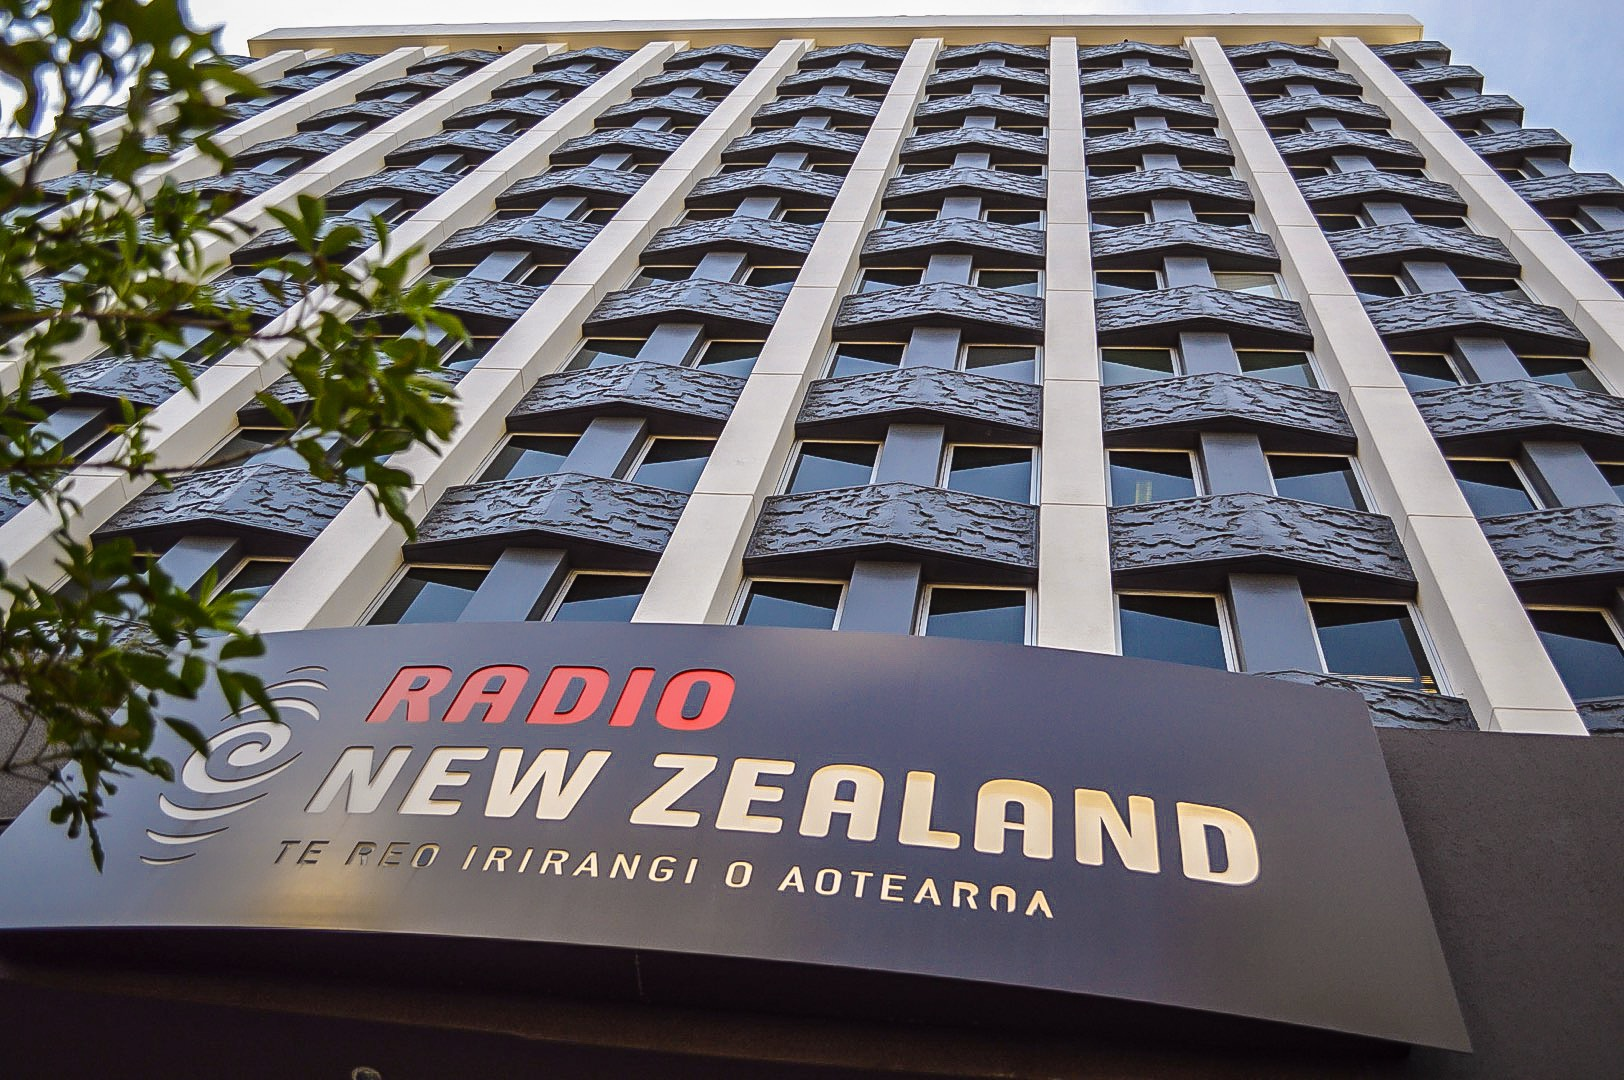 An exciting hour at the  Radio New Zealand studio.